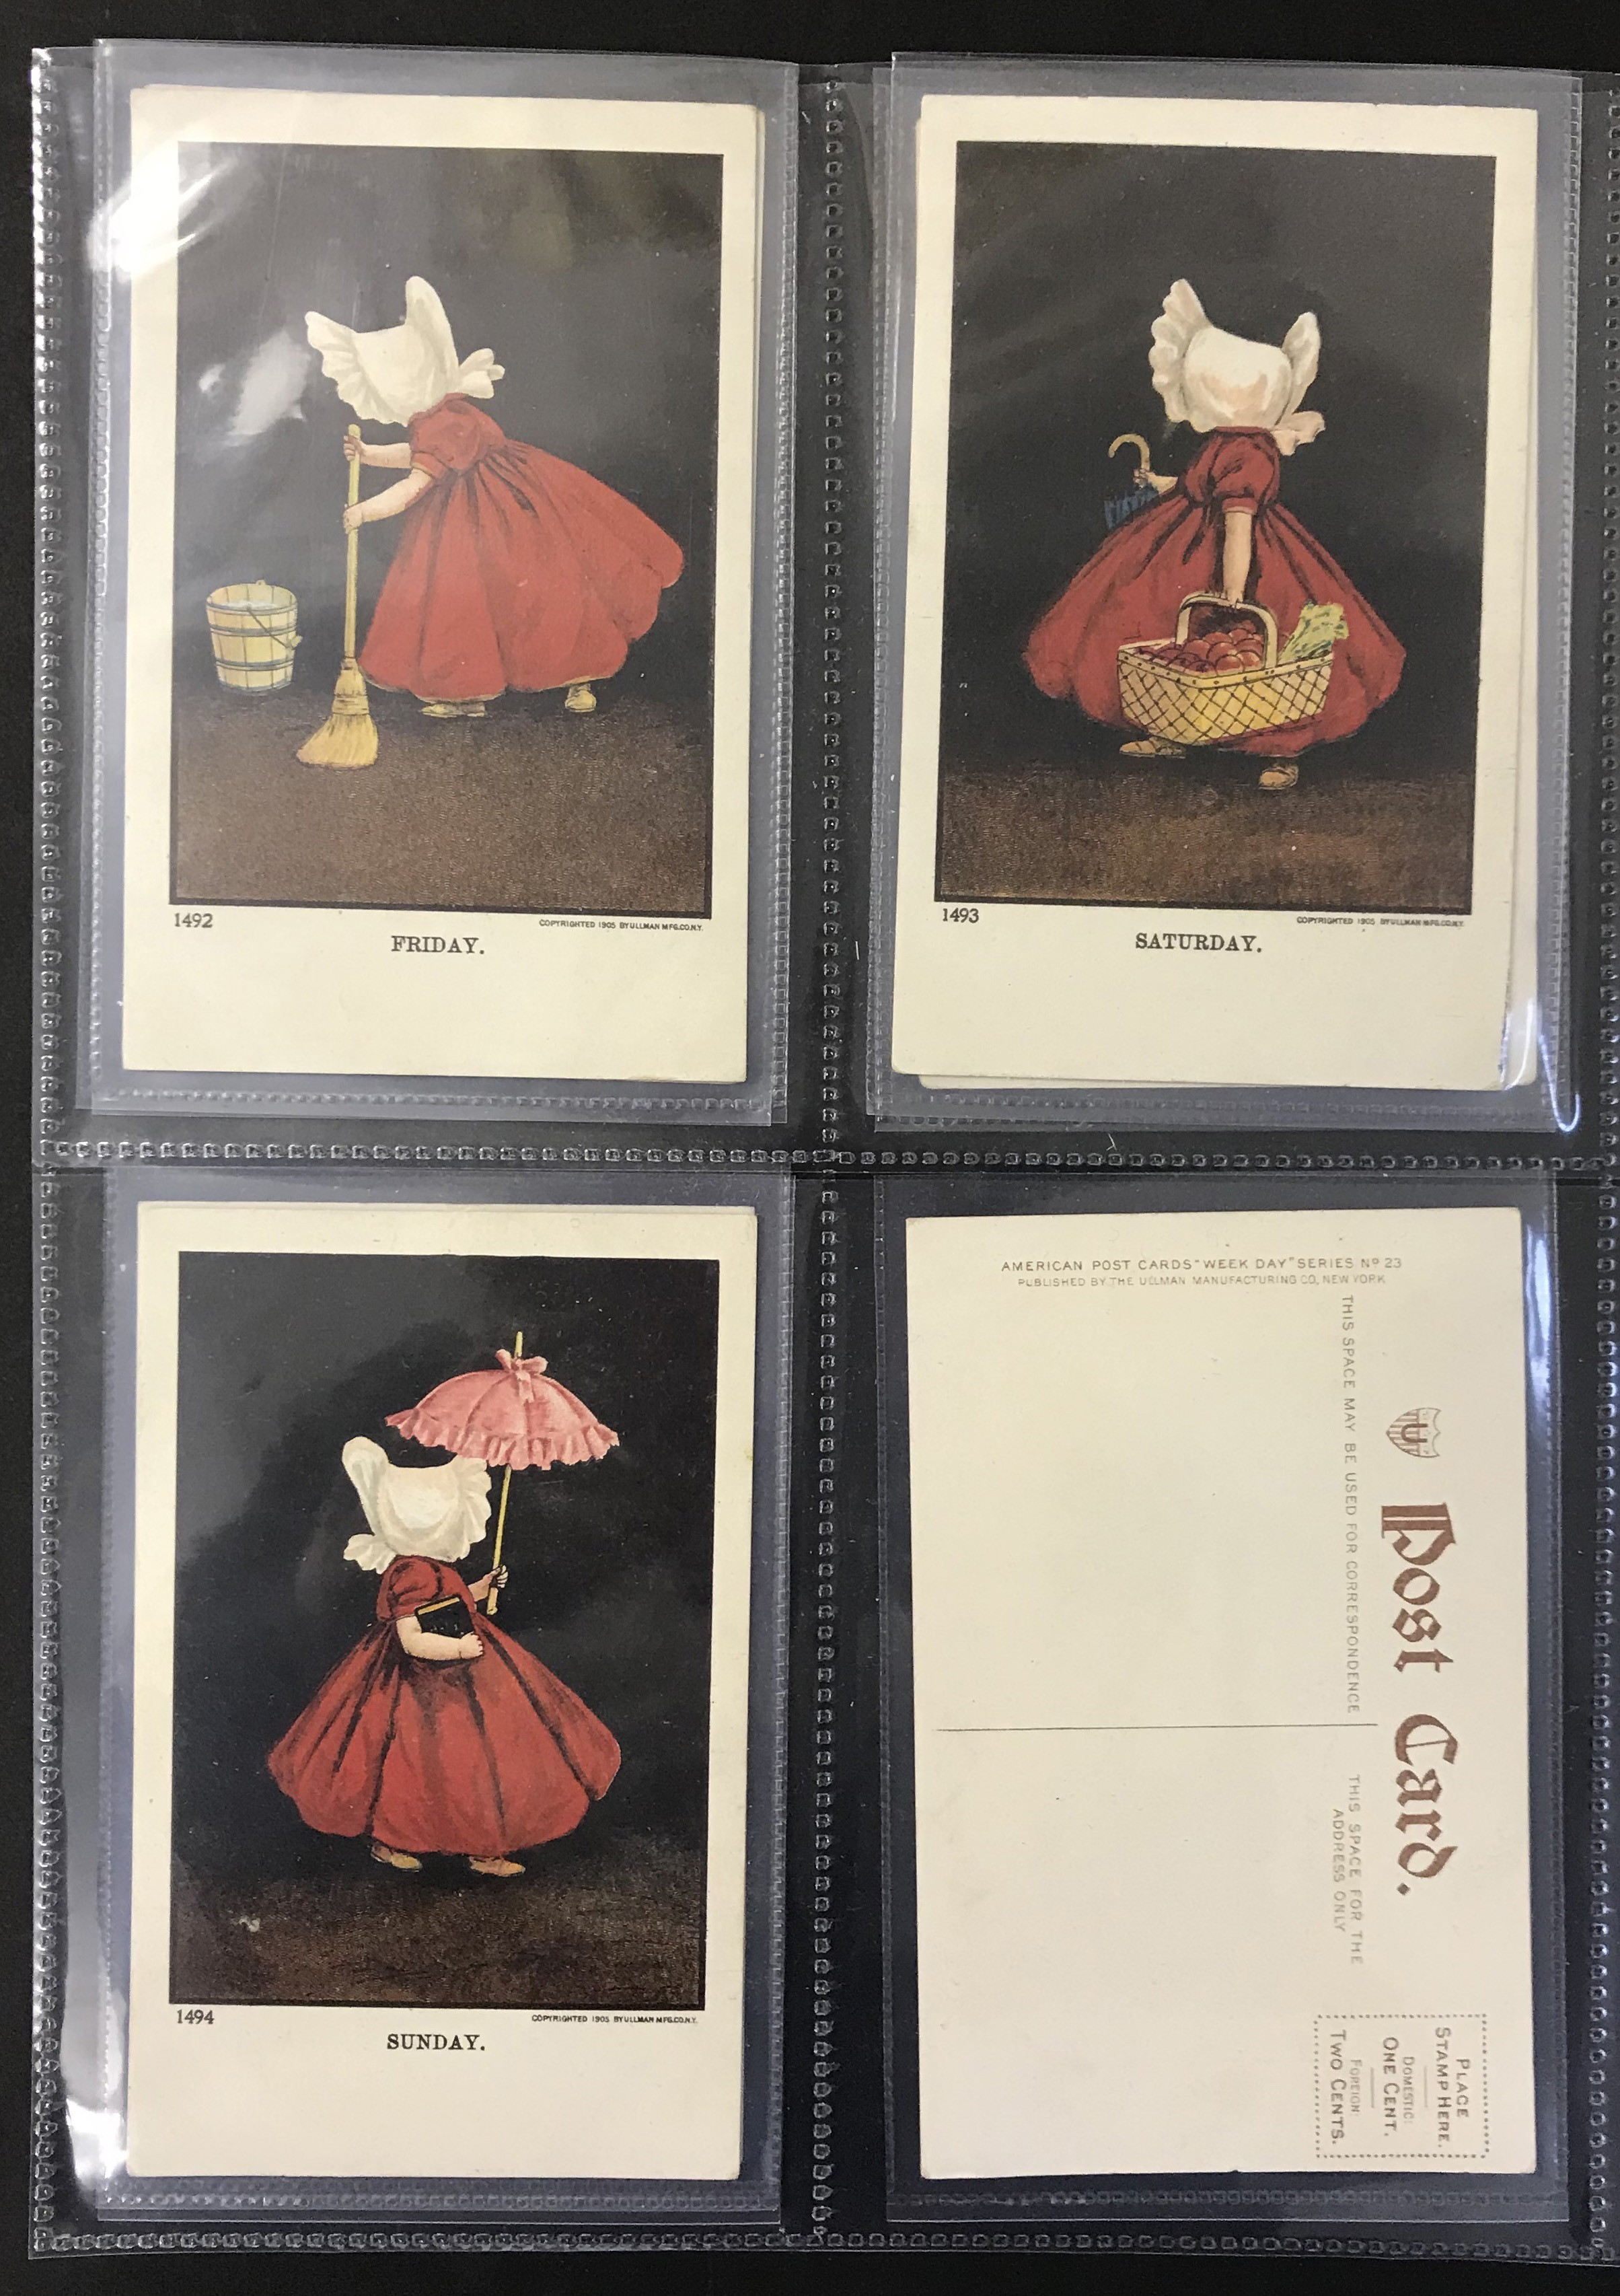 Ullman Manufacturing Co. Postcards - Complete set of Sunbonnet Baby Days - Image 3 of 11